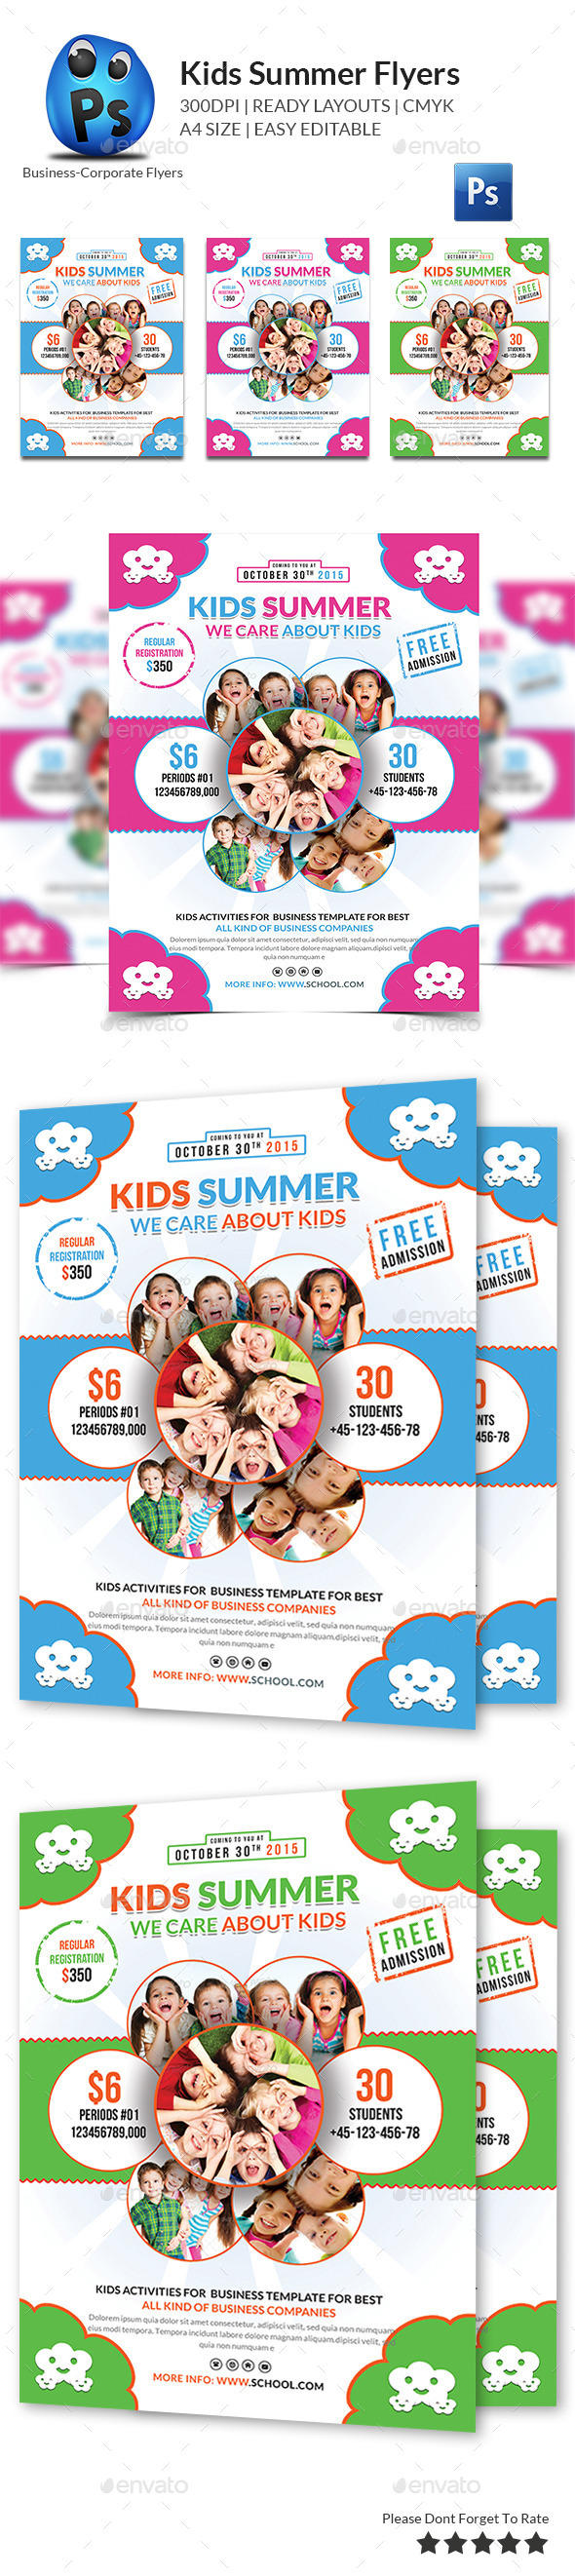 Kids Summer Flyers